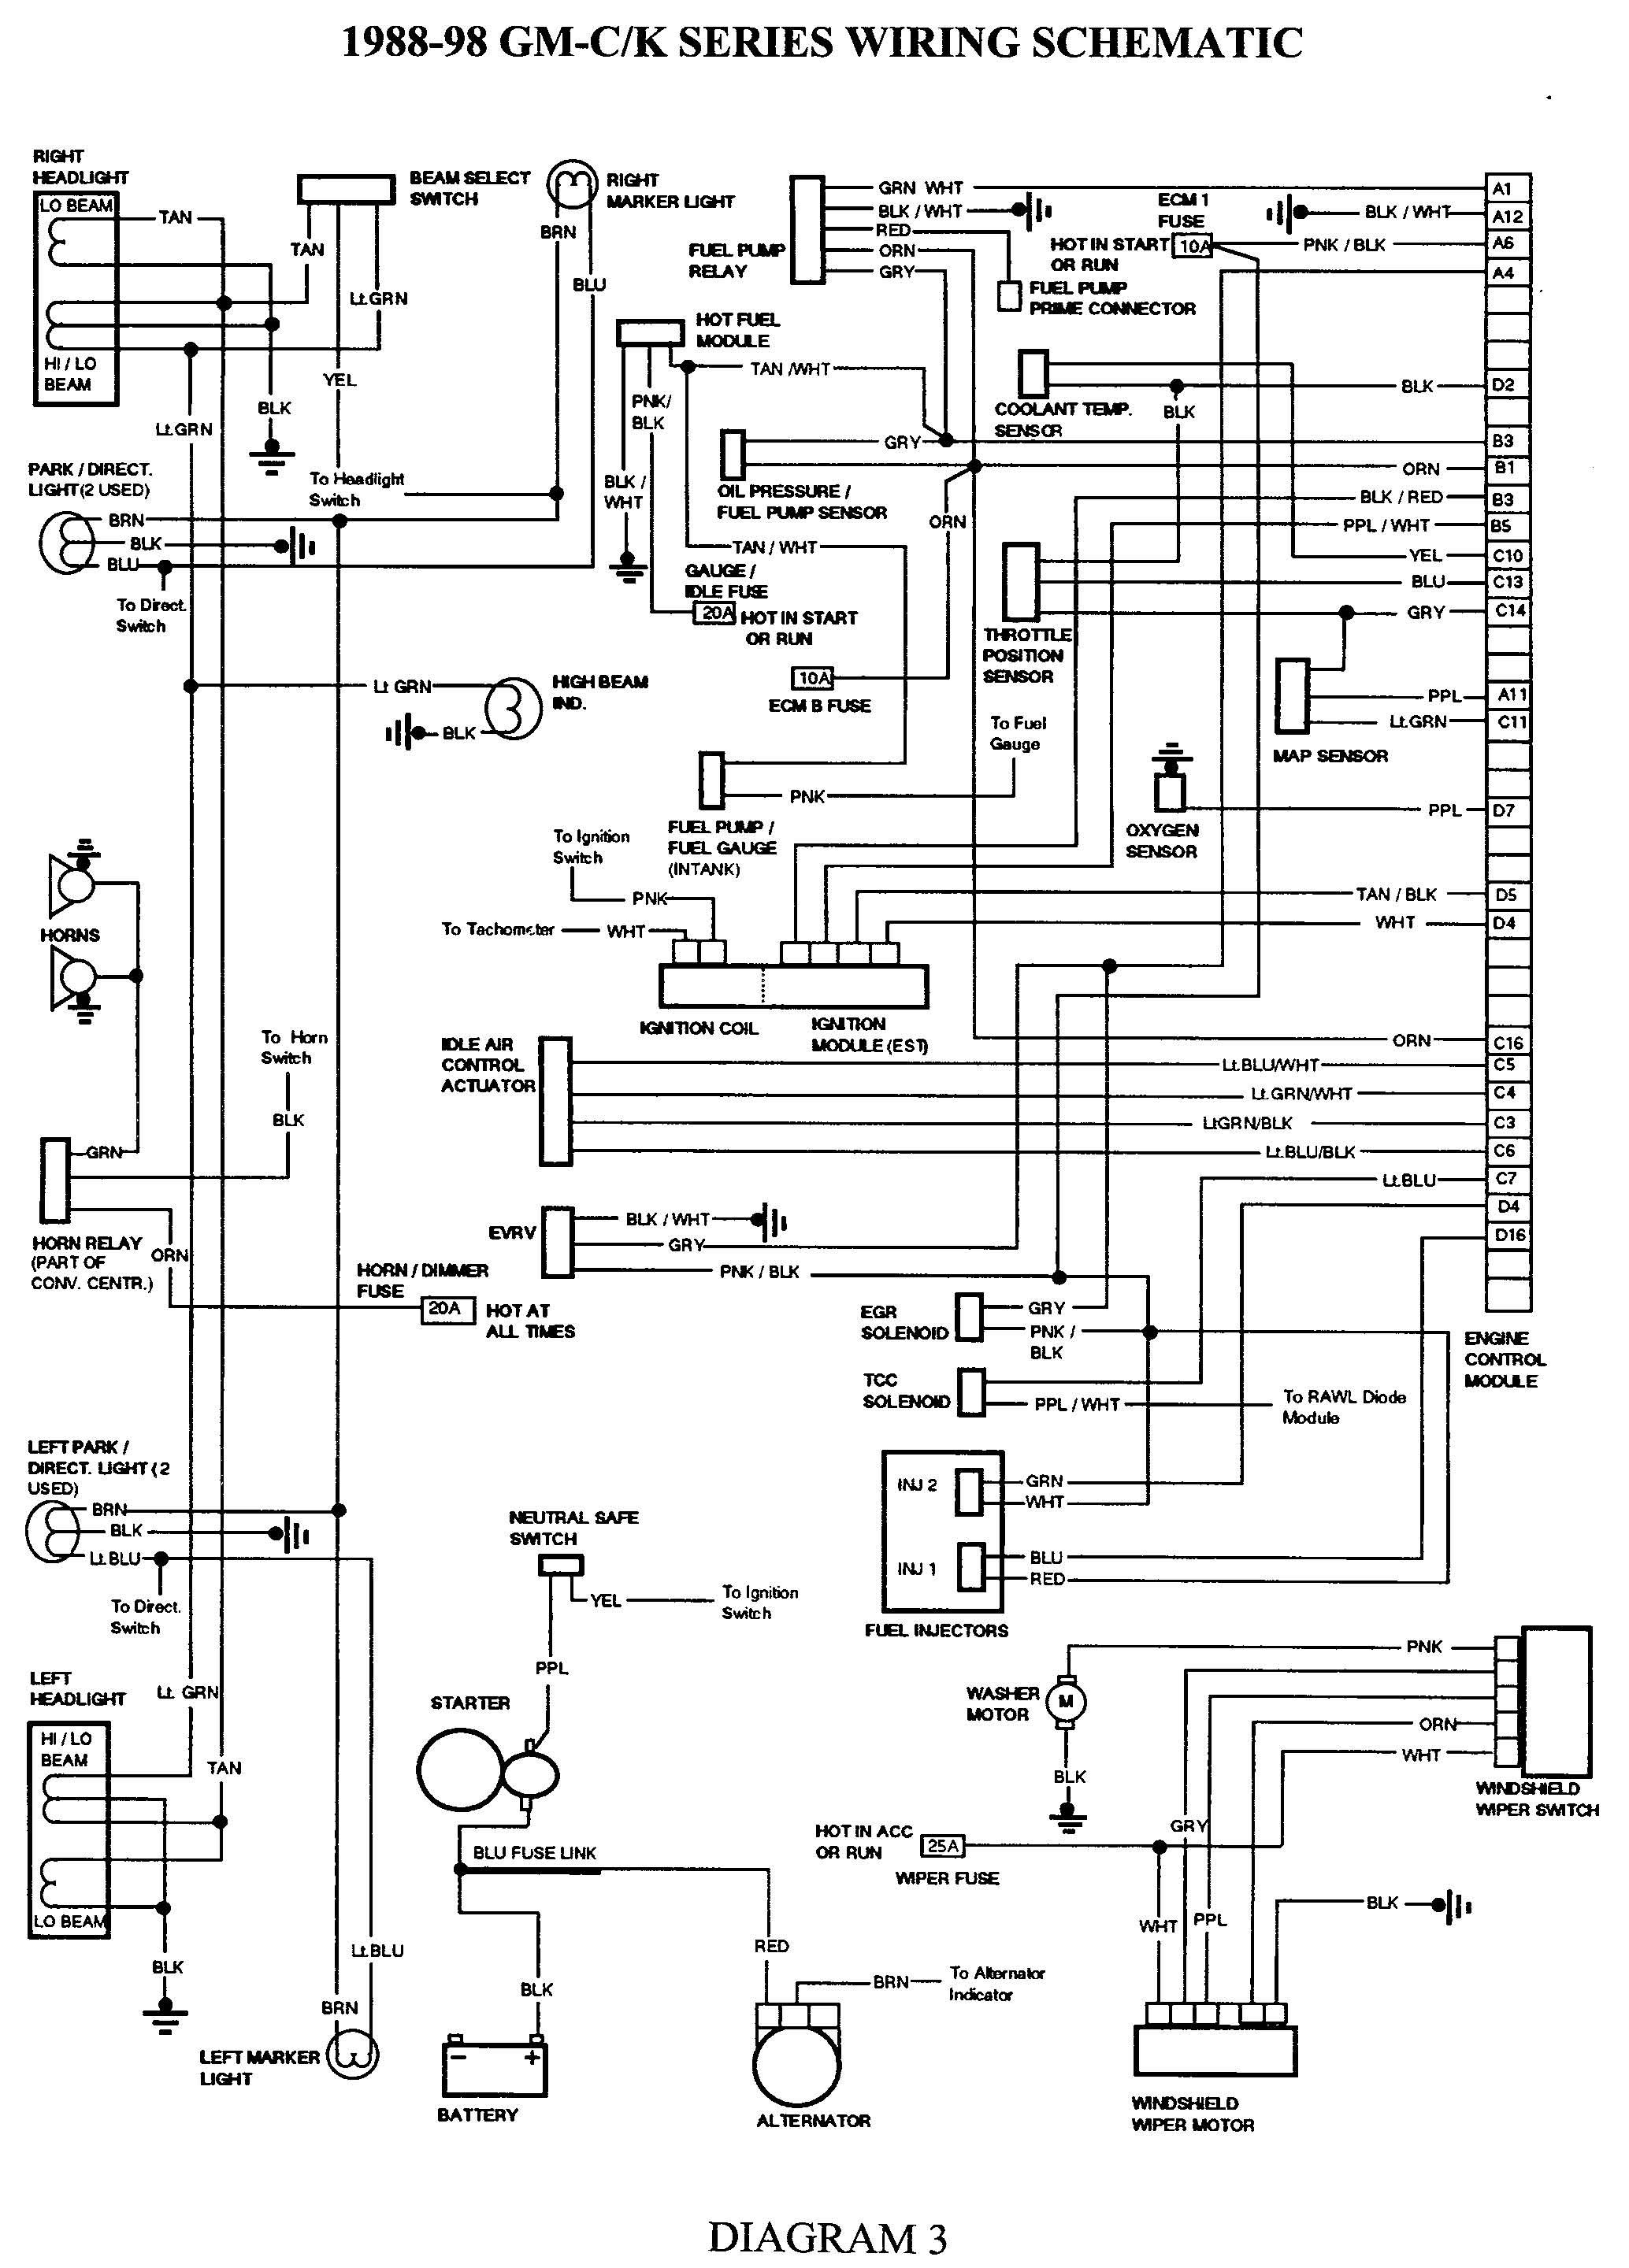 gmc truck wiring diagrams on gm wiring harness diagram 88 98 [ 2068 x 2880 Pixel ]